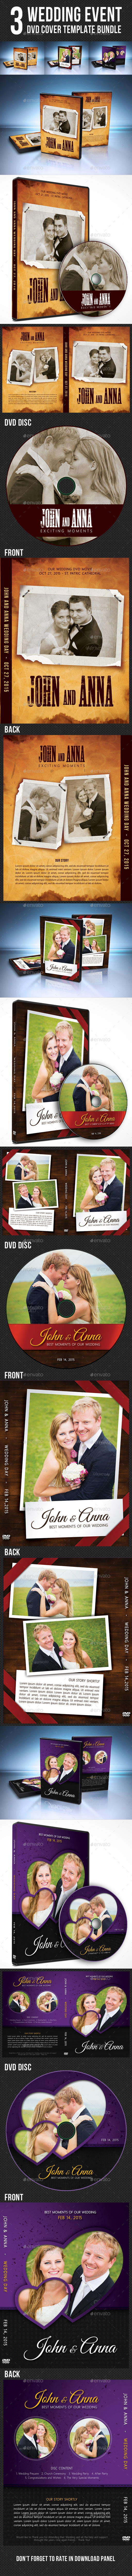 3 in 1 Wedding Event DVD Covers Bundle - CD & DVD Artwork Print Templates